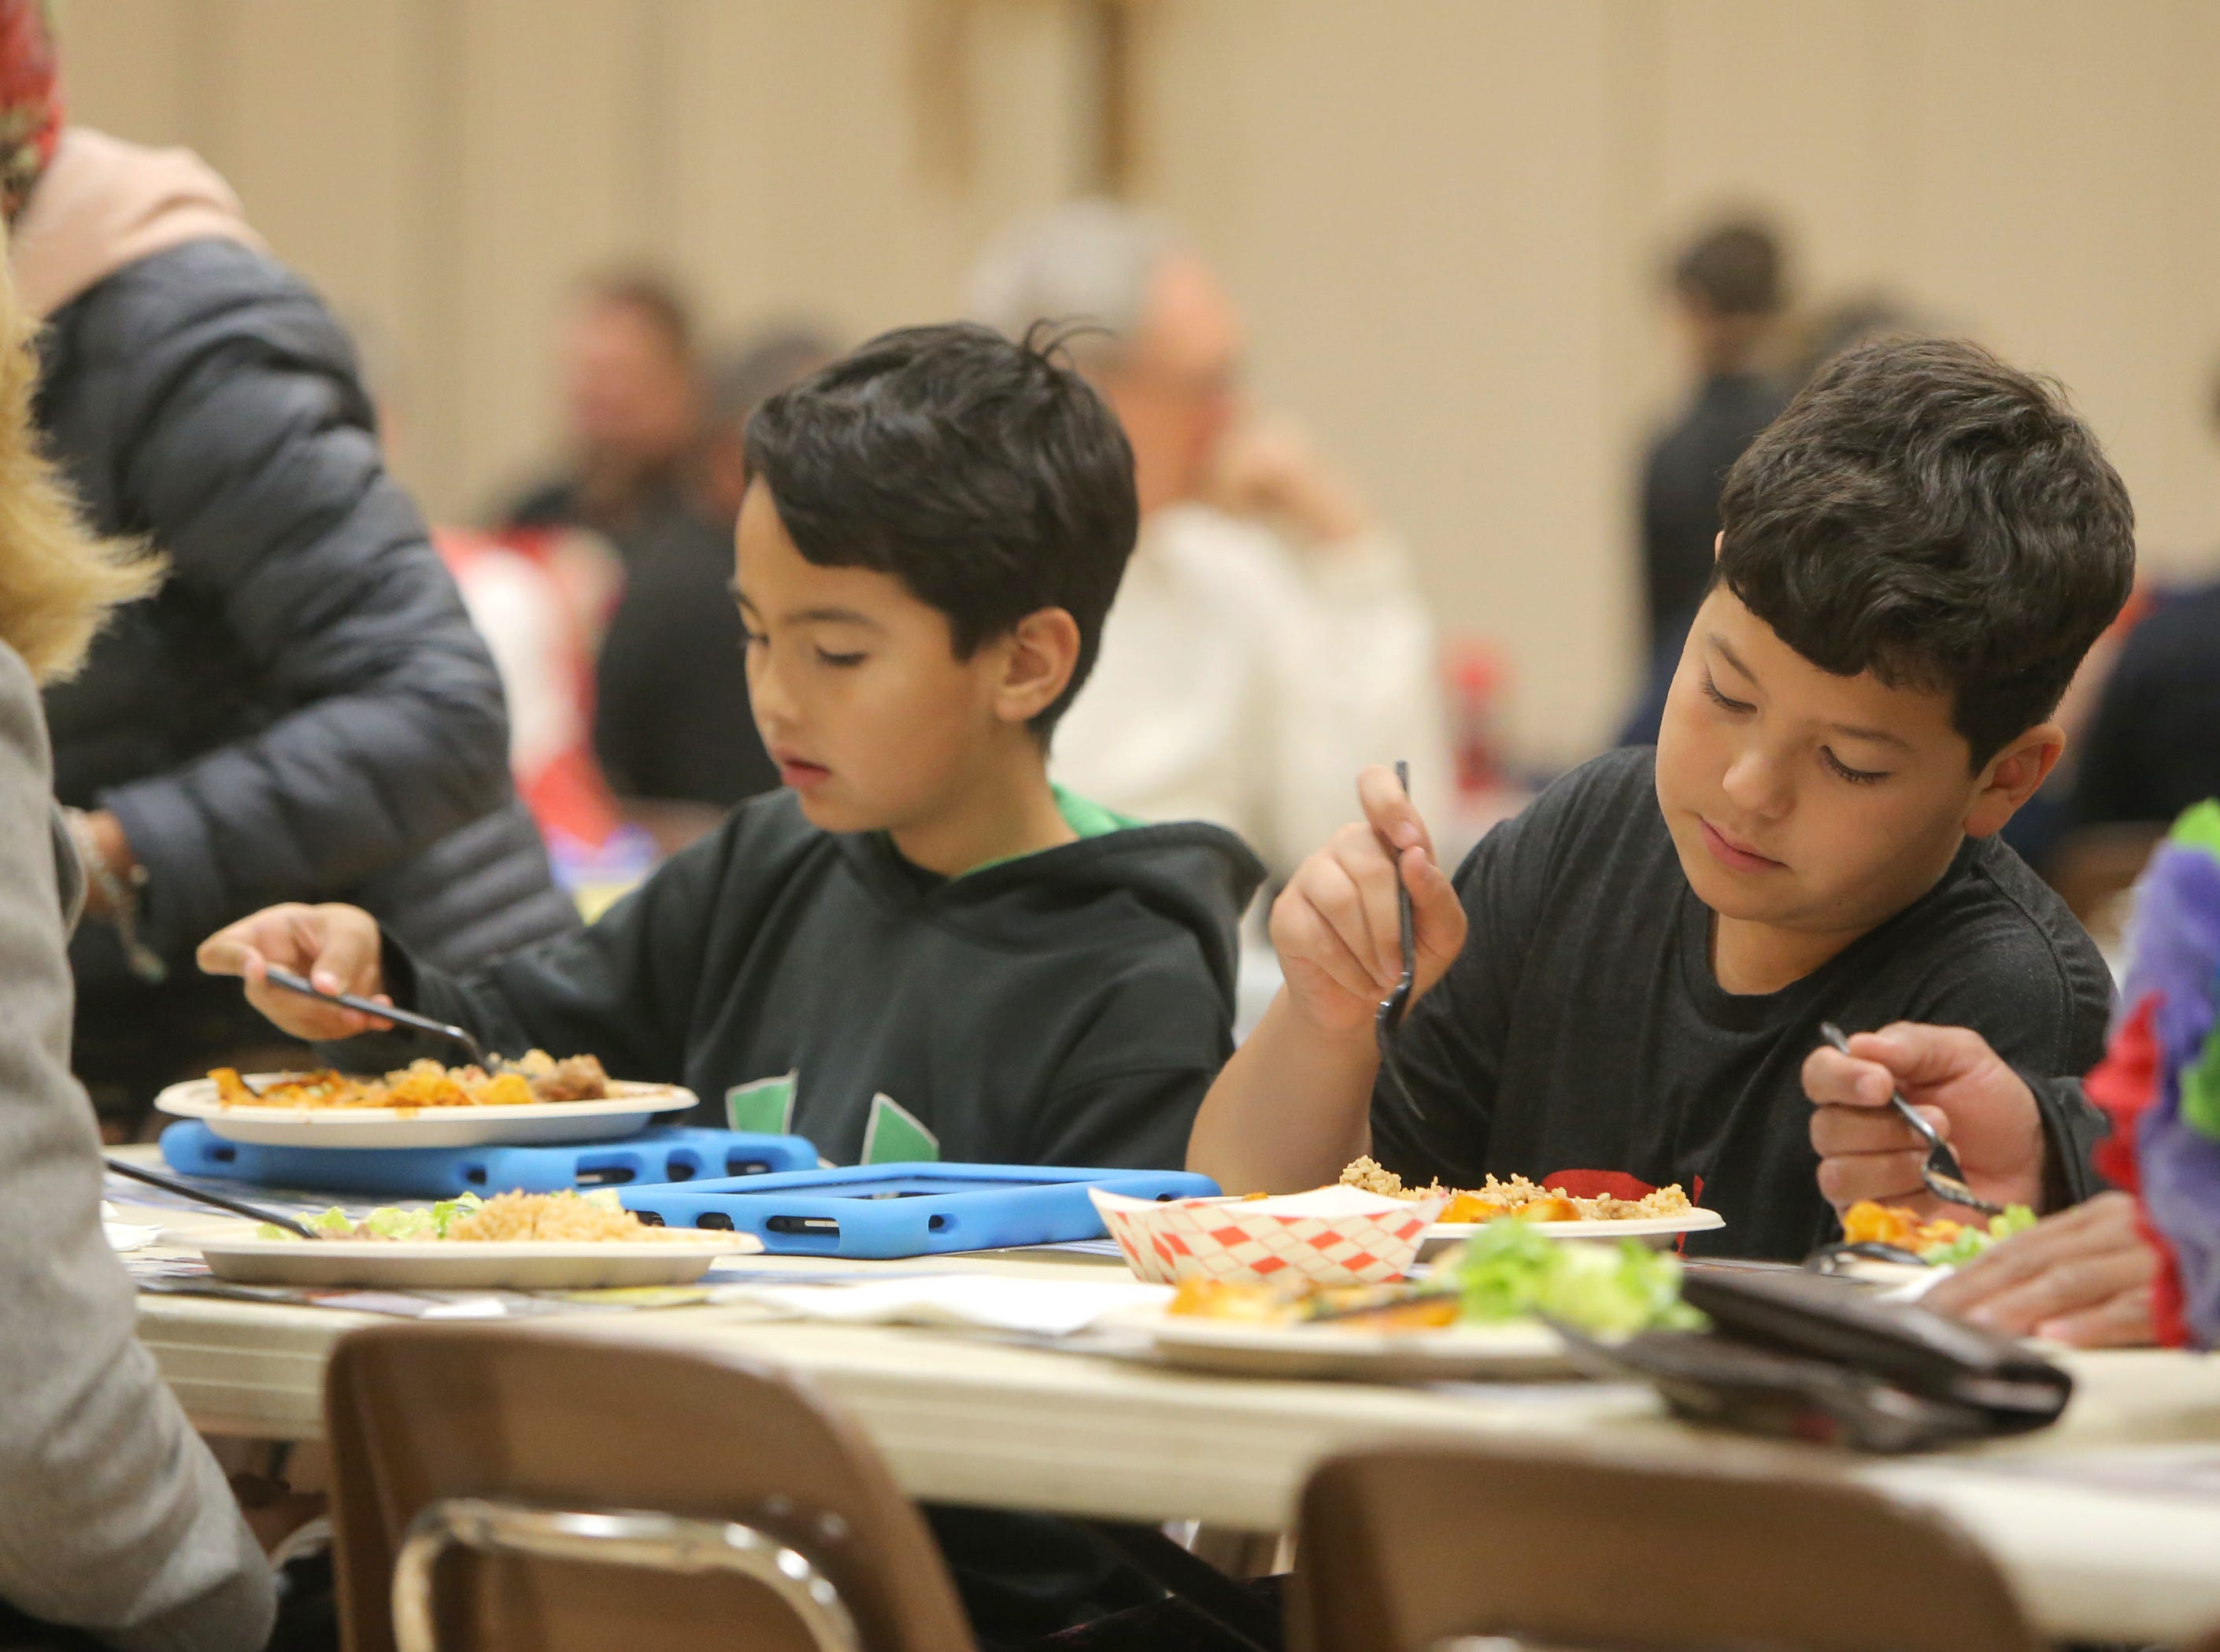 Aleck Bello, of Newbury Park, left, and his brother Aidan Bello get ready to dig into their enchiladas dinner during the Rotary Club of Camarillo's annual Viva la Comida Dinner and Fiesta fundraiser on Monday at the Camarillo Community Center.